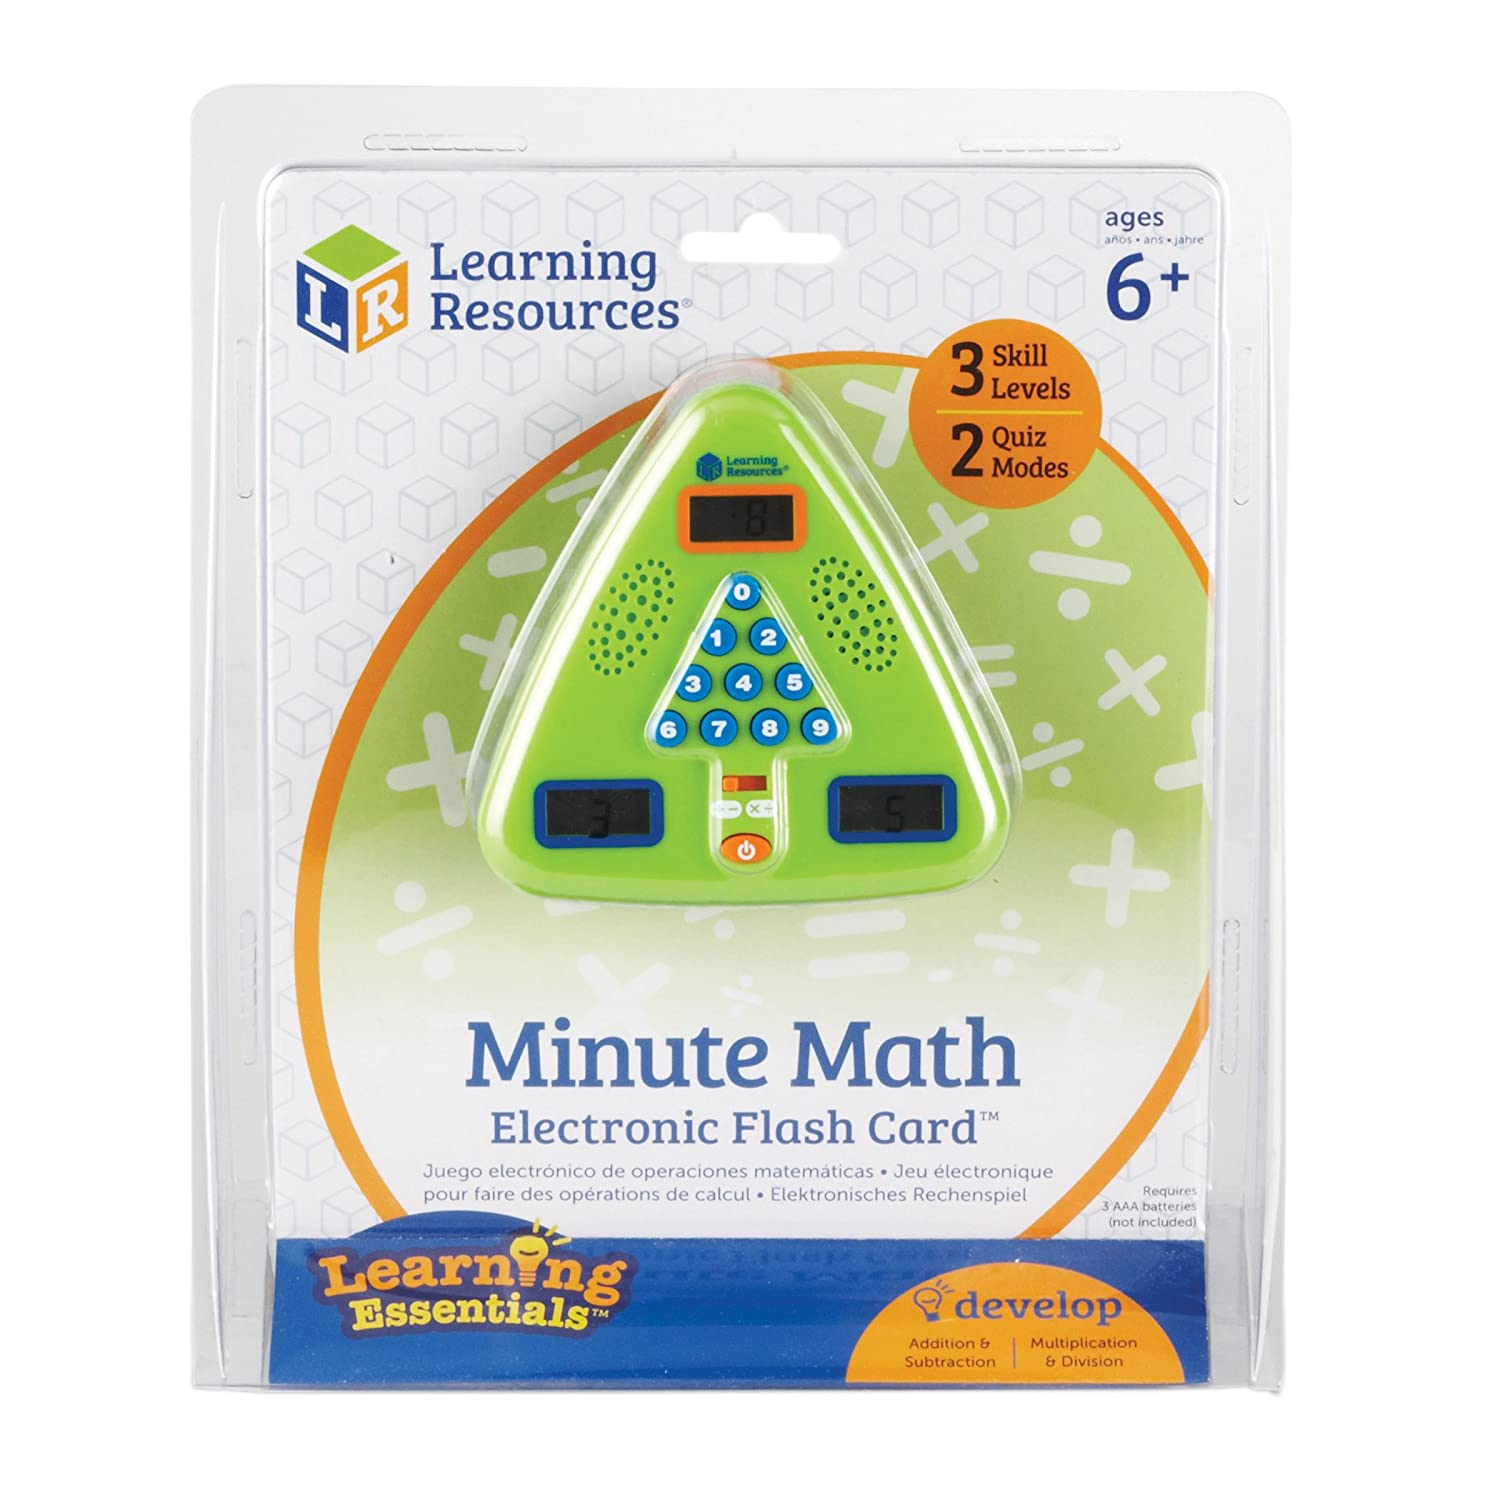 Amazon.com: Learning Resources Minute Math Electronic Flash Card ...